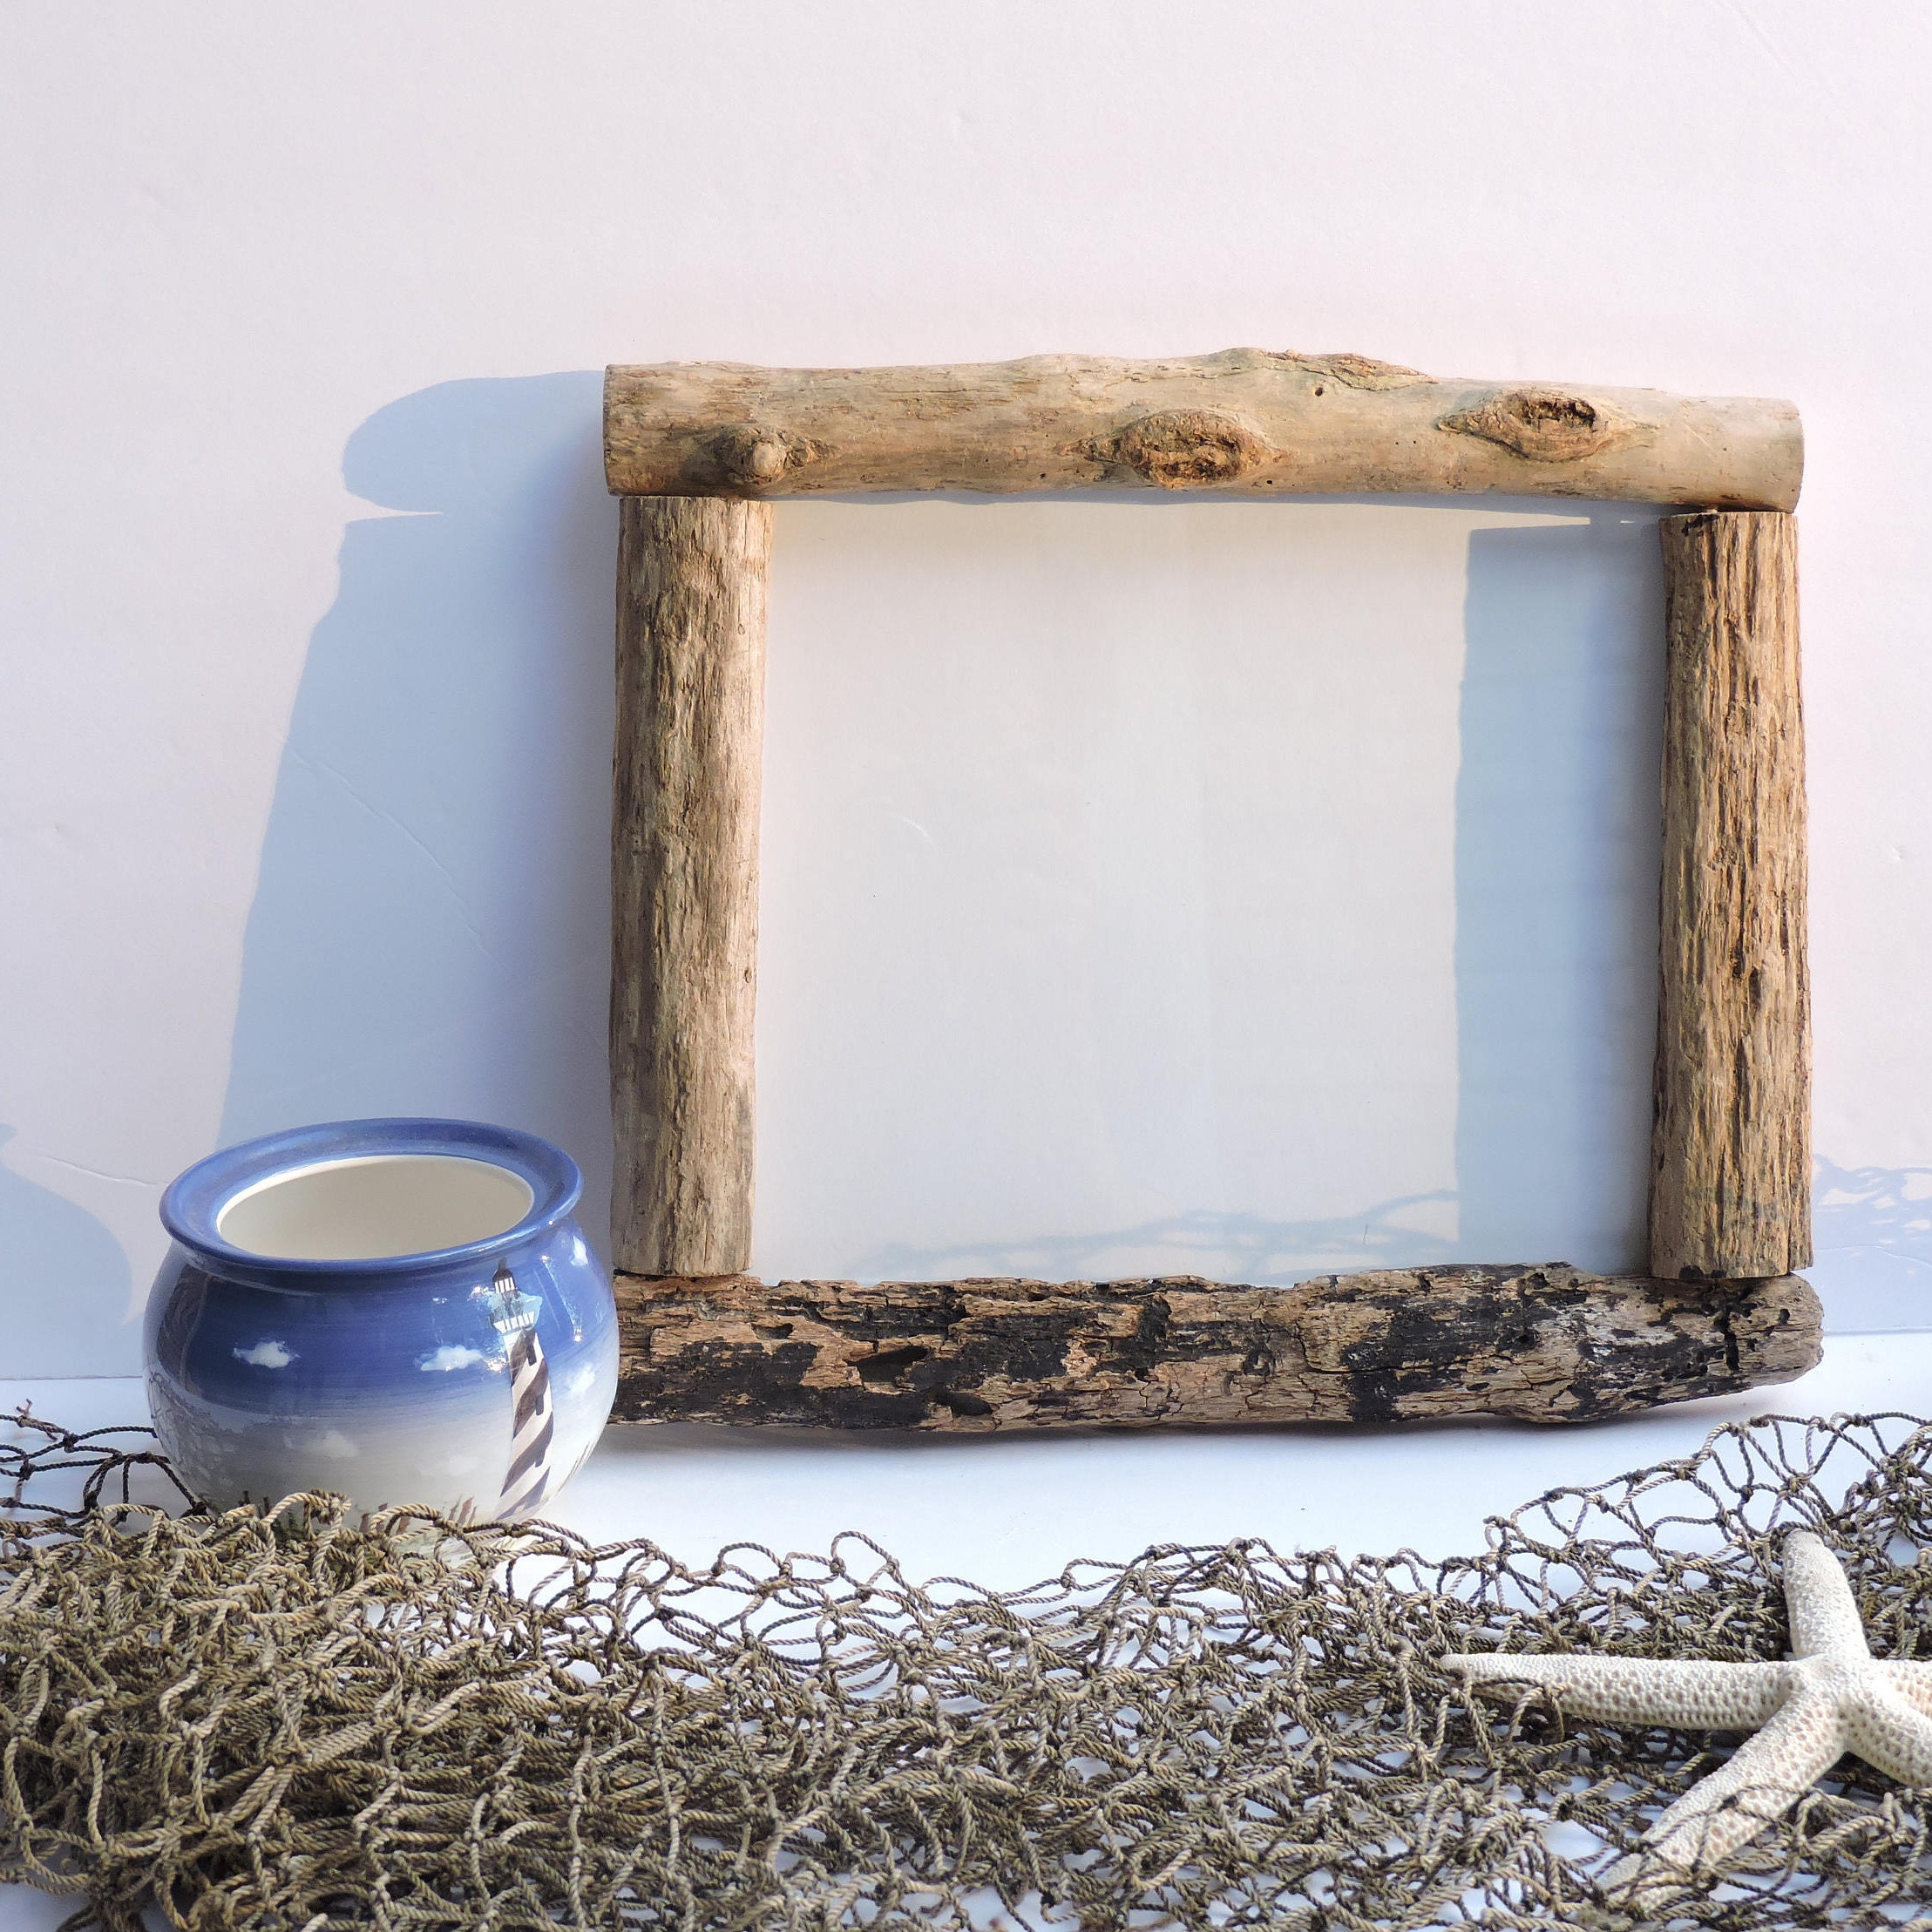 8x10 2032cmx254cm real driftwood frame bohemian frankieframeshop pl016 - Driftwood Picture Frame